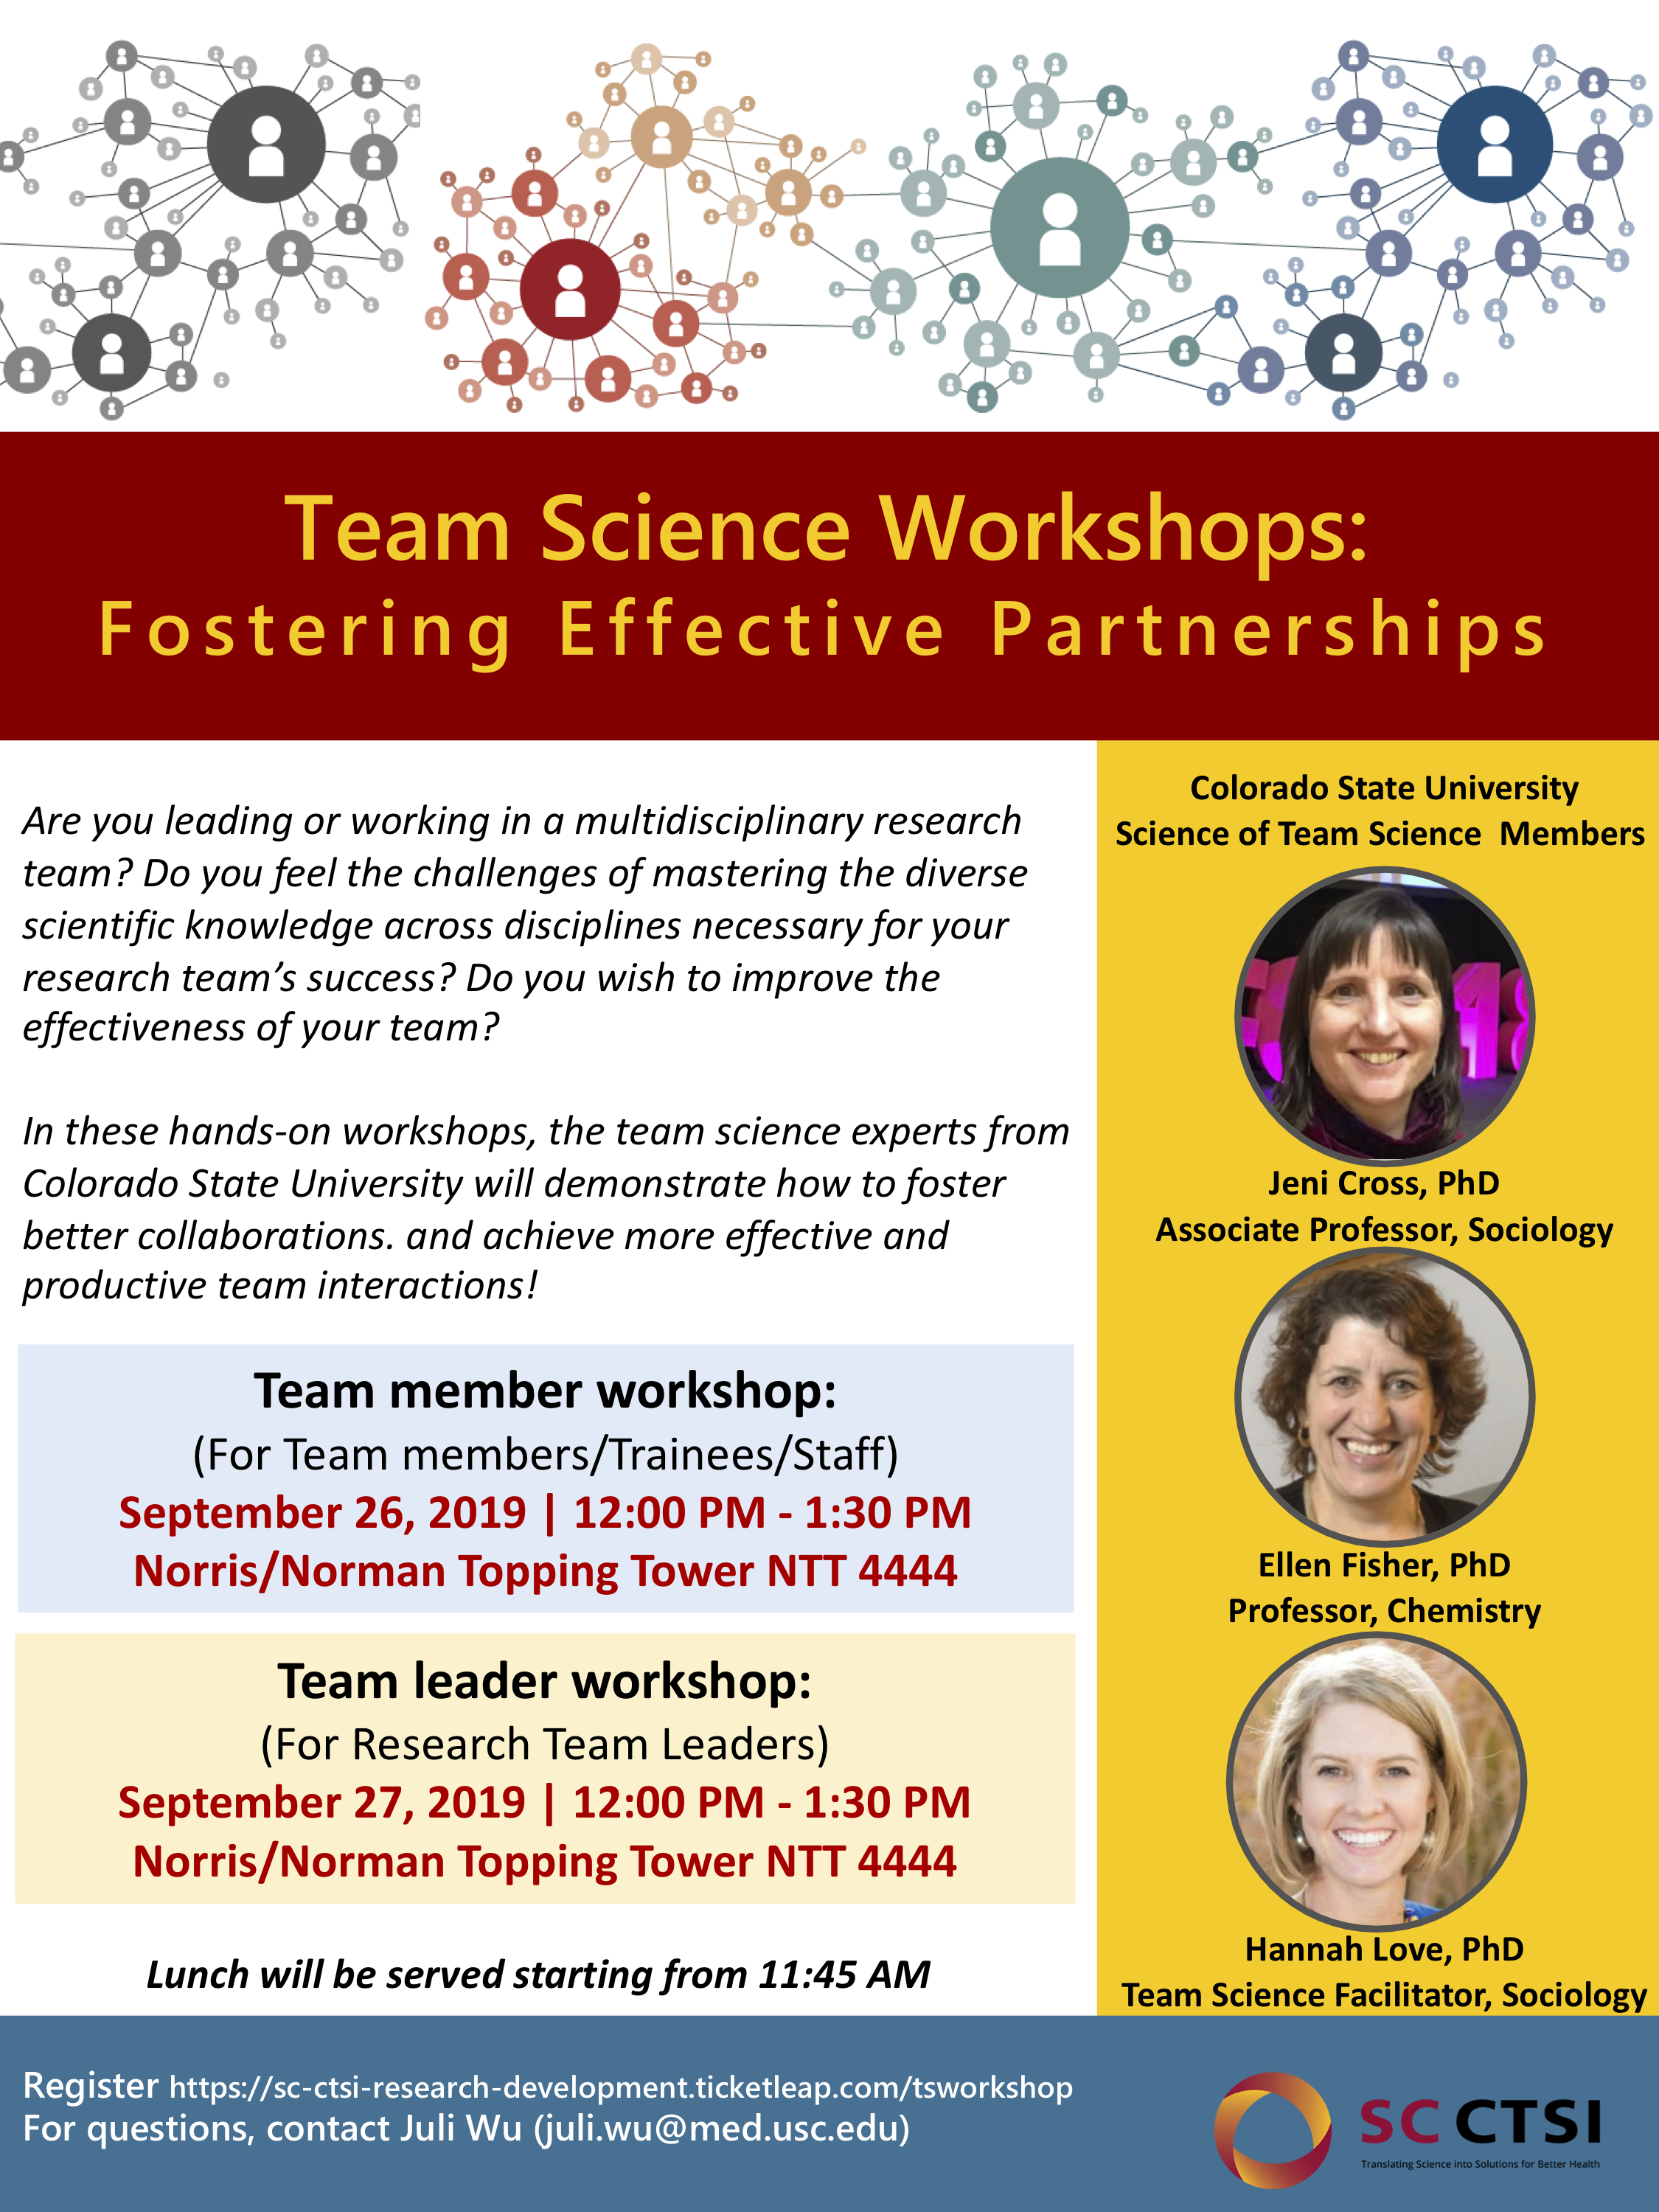 Team-Science-Workshops_Fostering-Effective-Partnerships.png#asset:5192